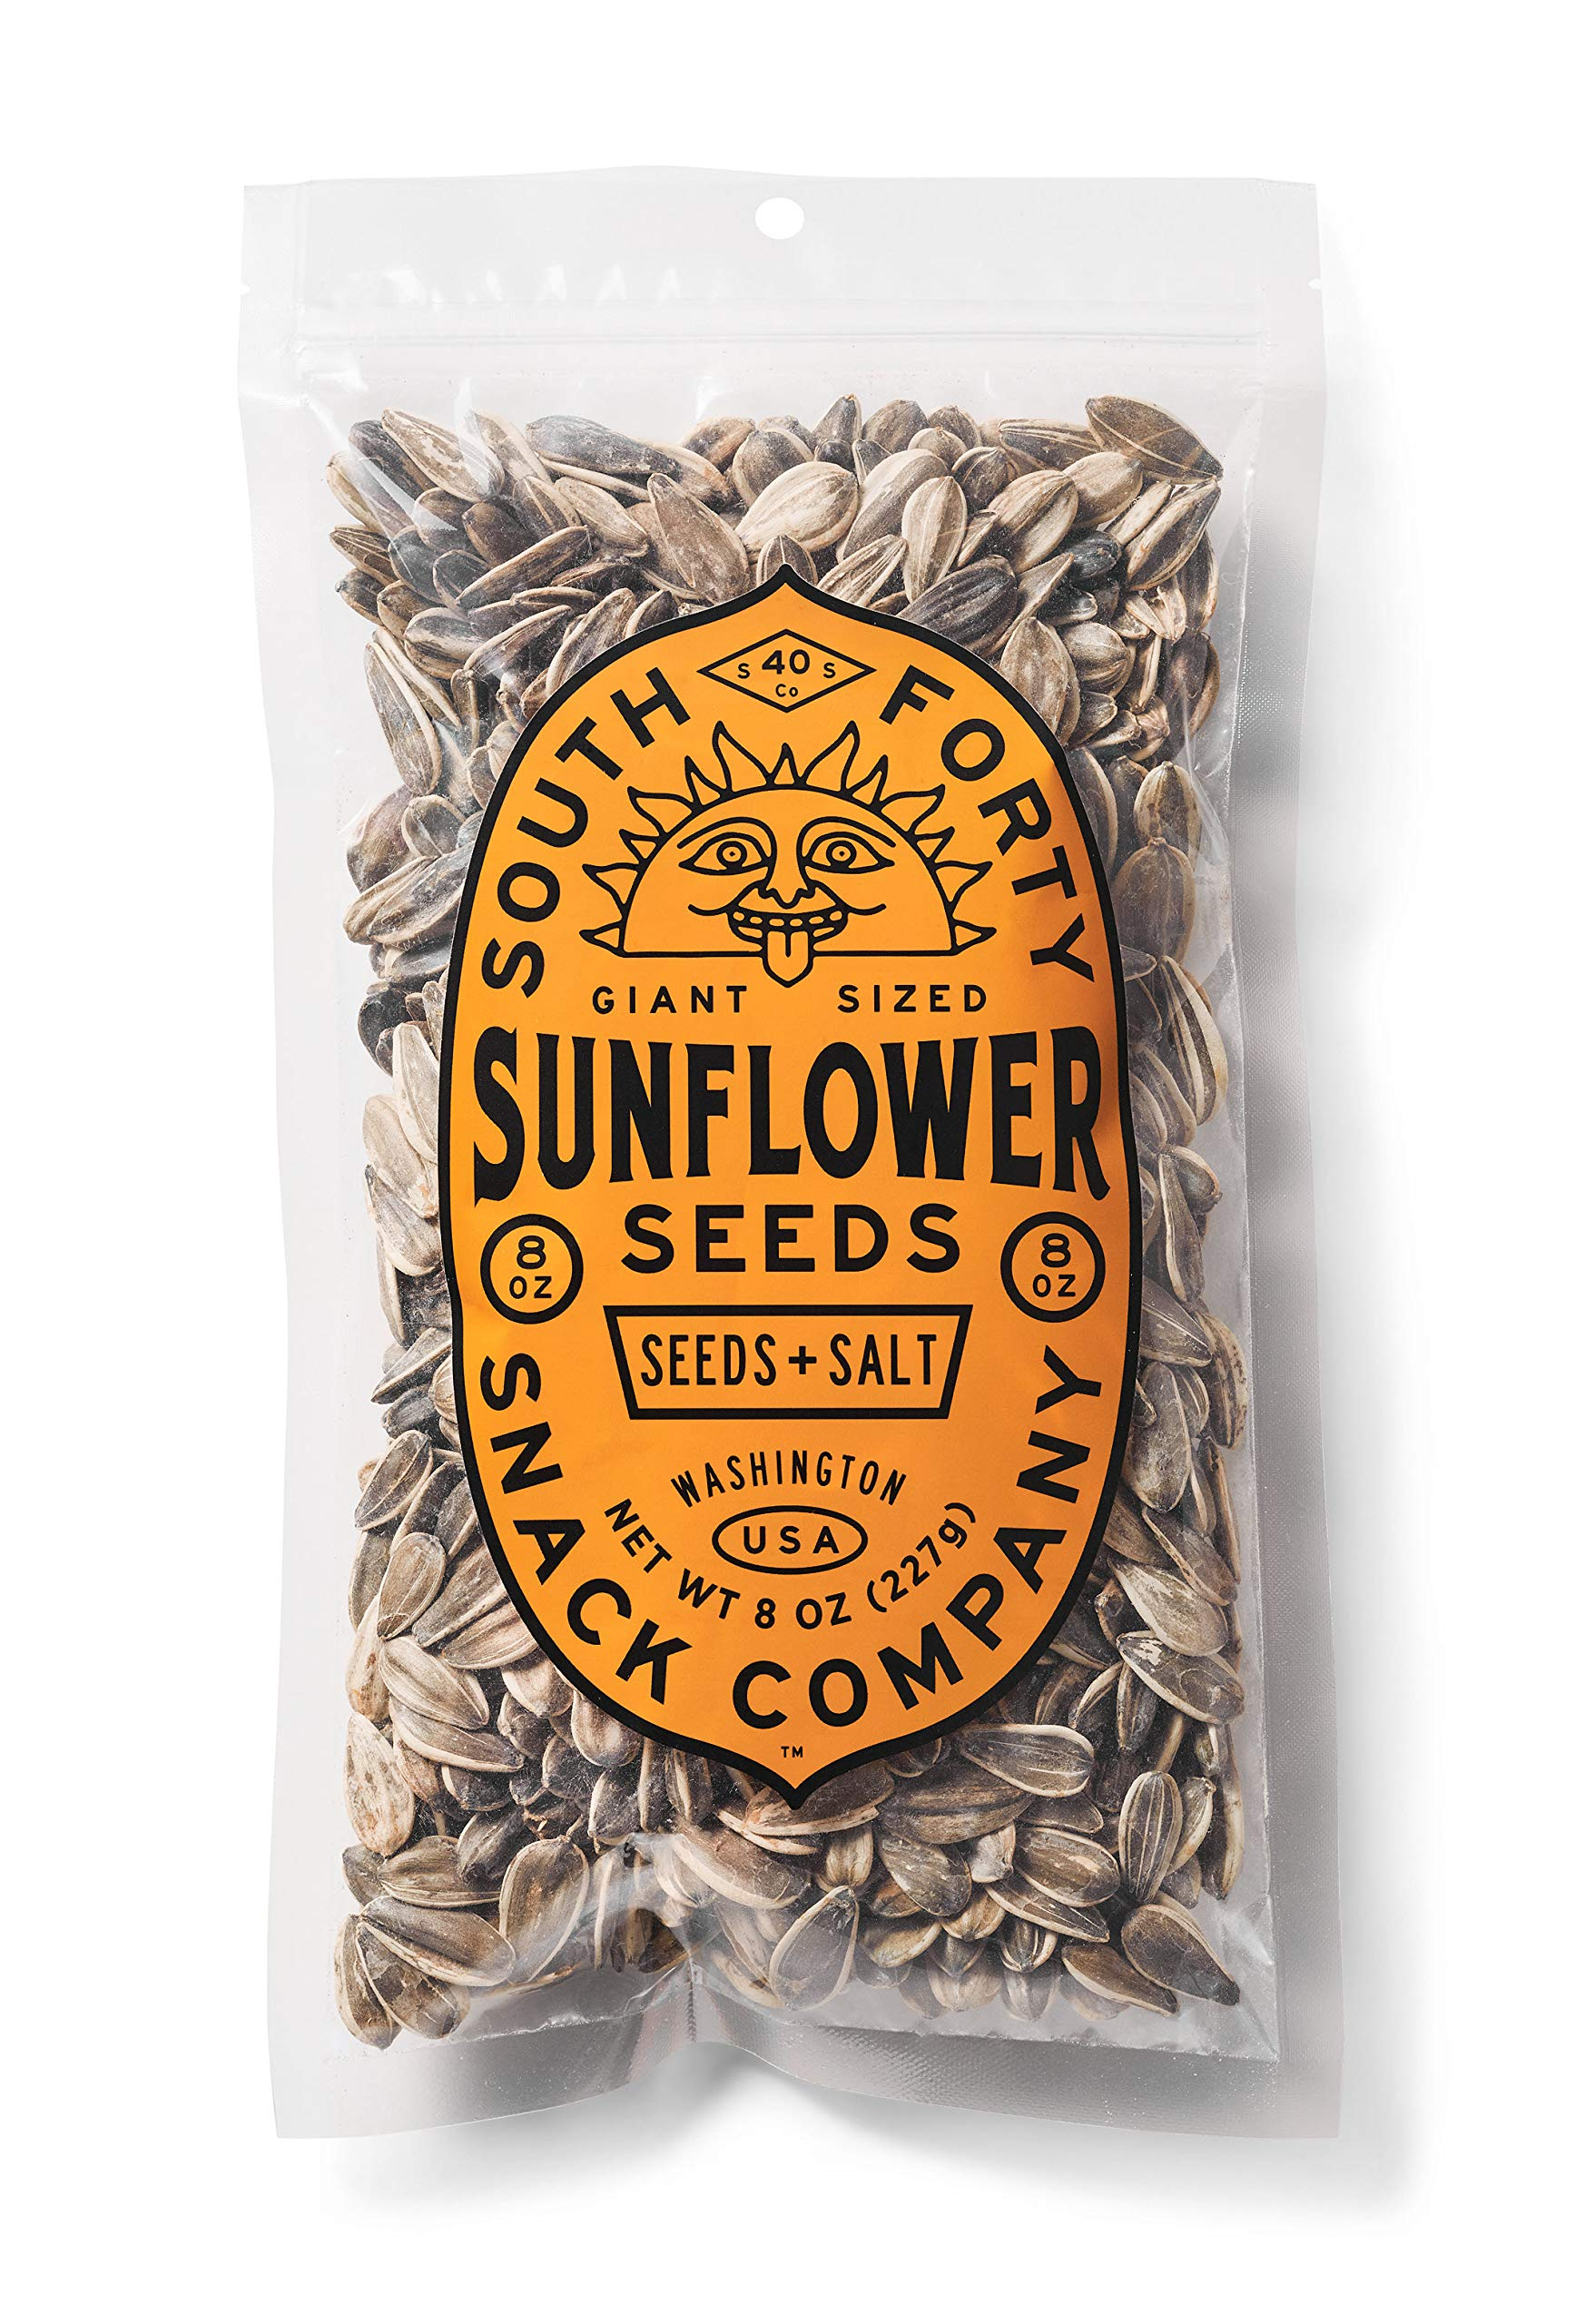 Premium Sunflower Seeds | Jumbo Sized, Batch Roasted, Perfectly Salted, In-Shell - Large 8oz Snack Bag, Packaged for Ultimate Freshness South 40 Snacks by SOUTH 40 SNACKS